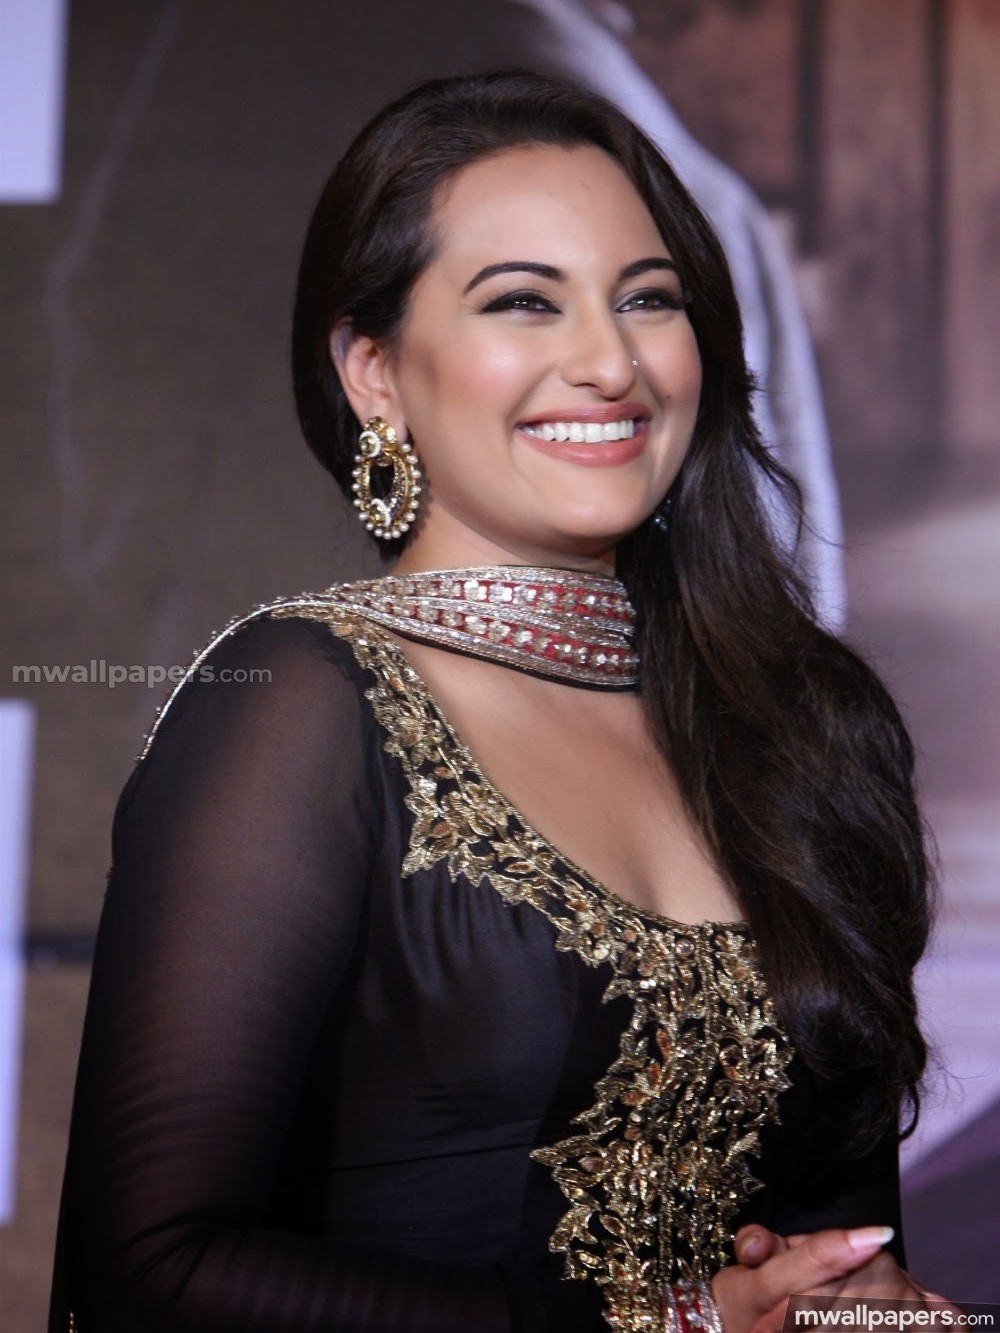 🌟 sonakshi sinha hot hd photos (1080p) [android/iphone/ipad hd